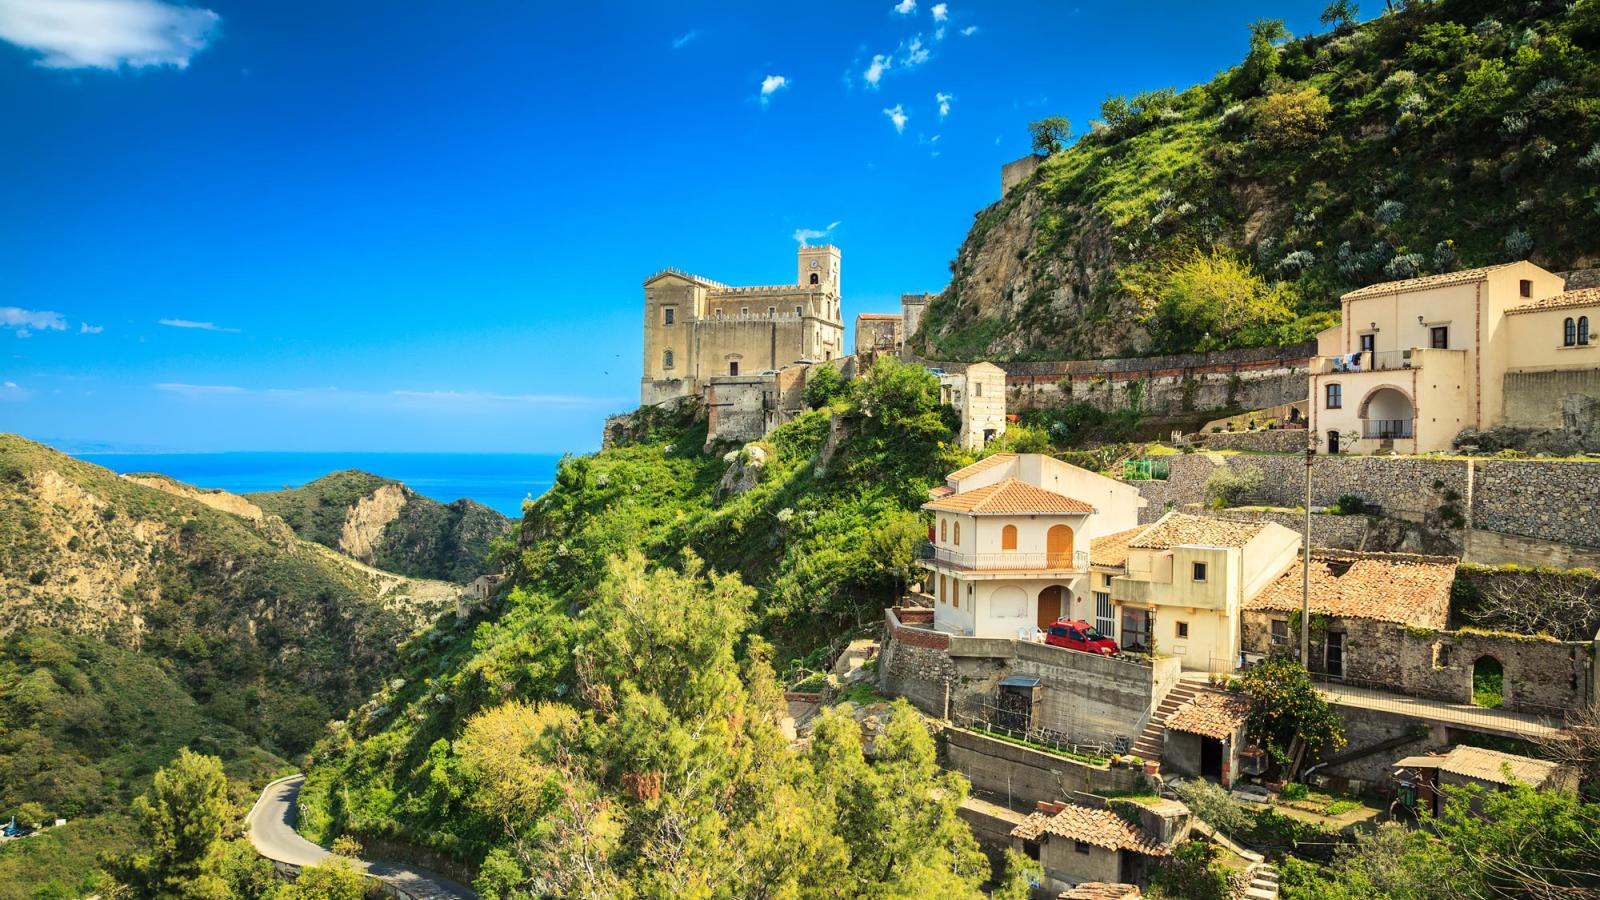 Holidays to taormina 2015 sicily topflight ireland 39 s for Taormina sicilia